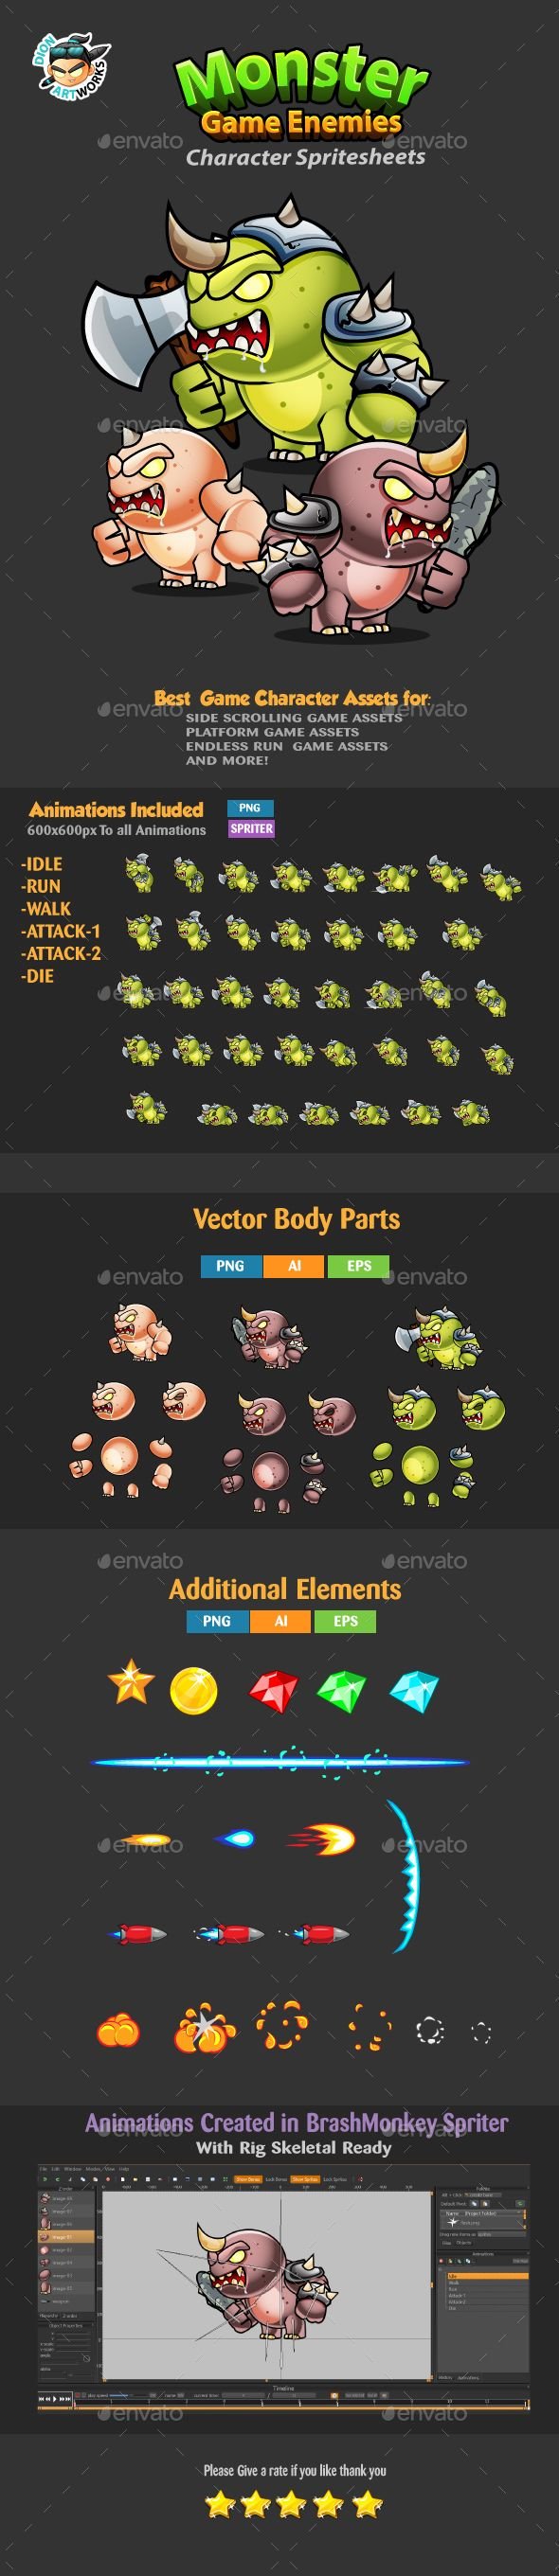 Monster Game Enemies Character Sprites 234 - Sprites #Game Assets Download here: https://graphicriver.net/item/monster-game-enemies-character-sprites-234/17087670?ref=alena994